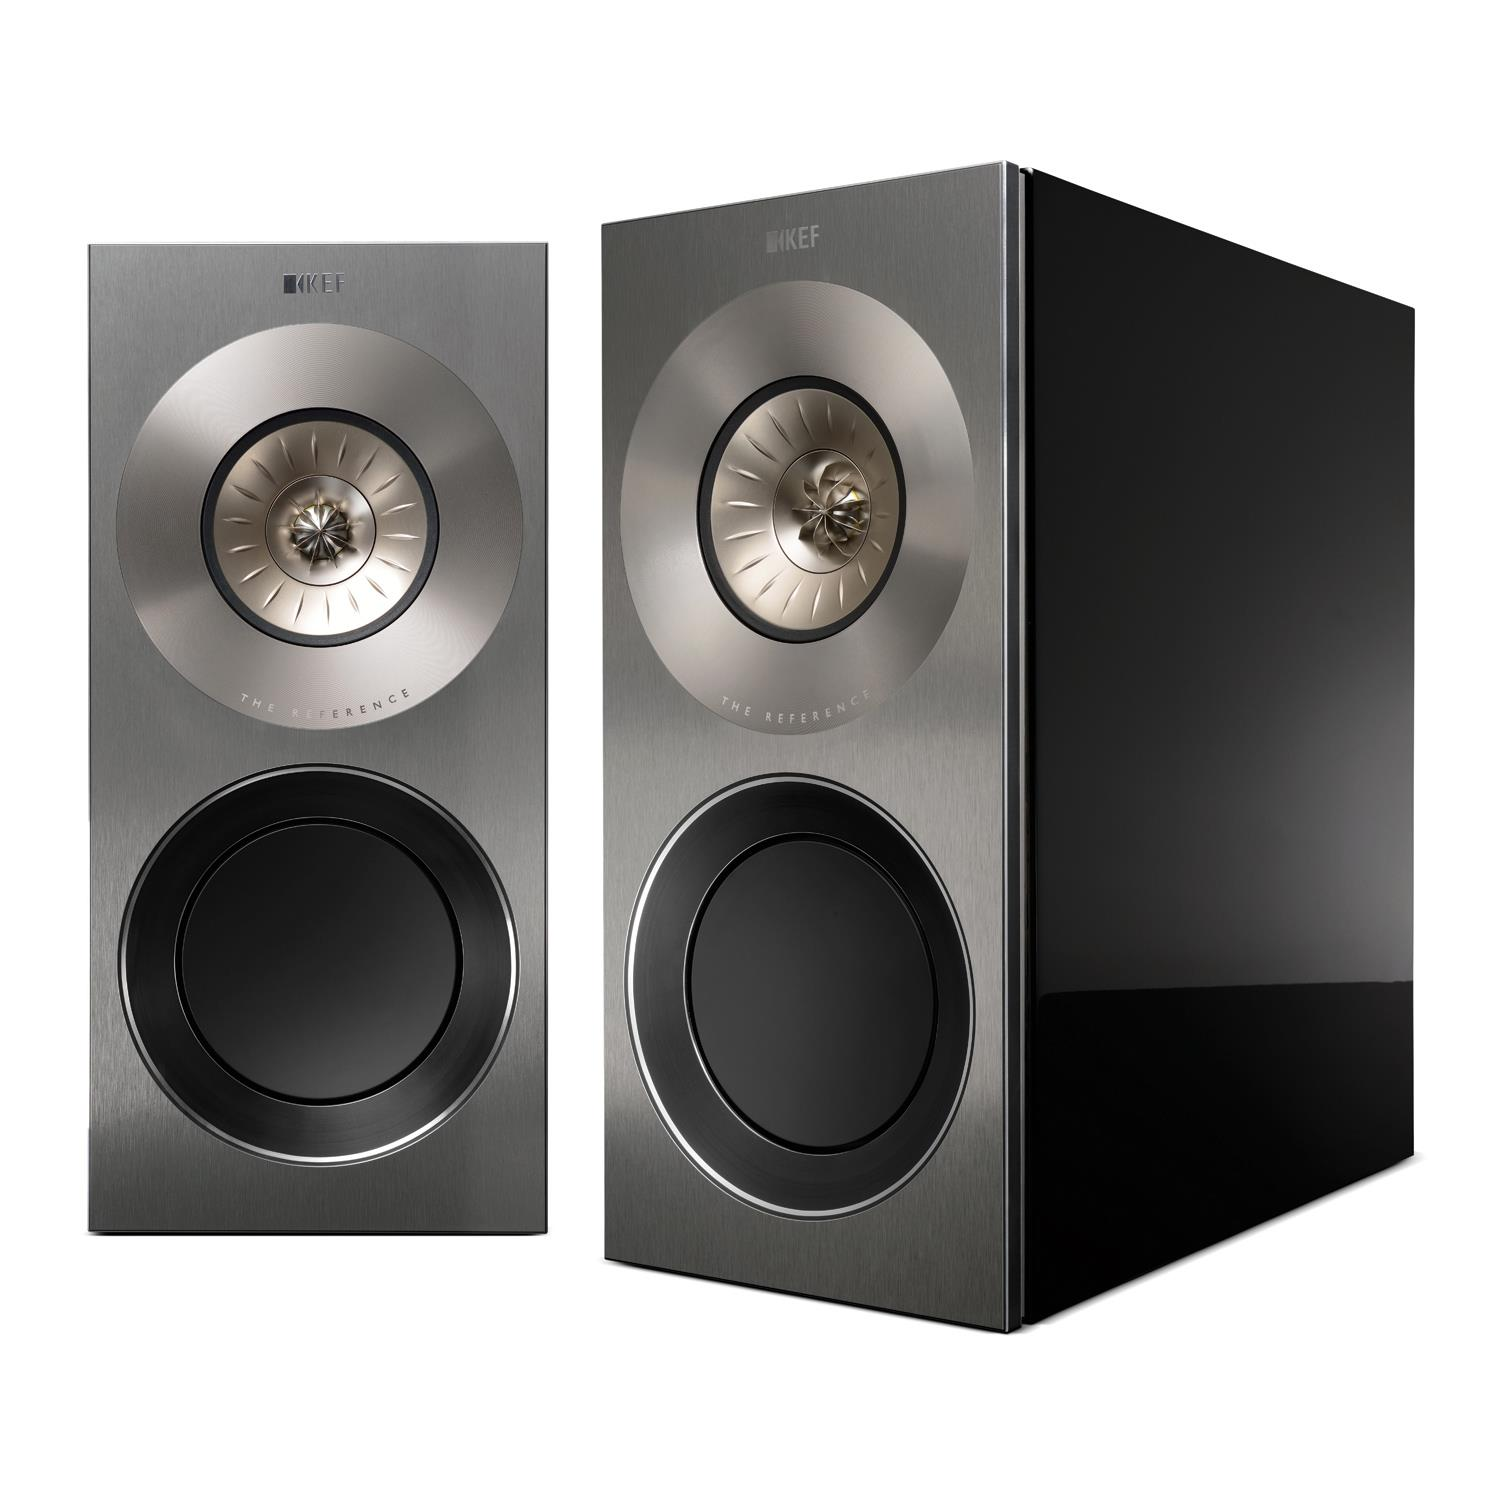 Sevenoaks Sound And Vision Kef Reference 1 Speakers